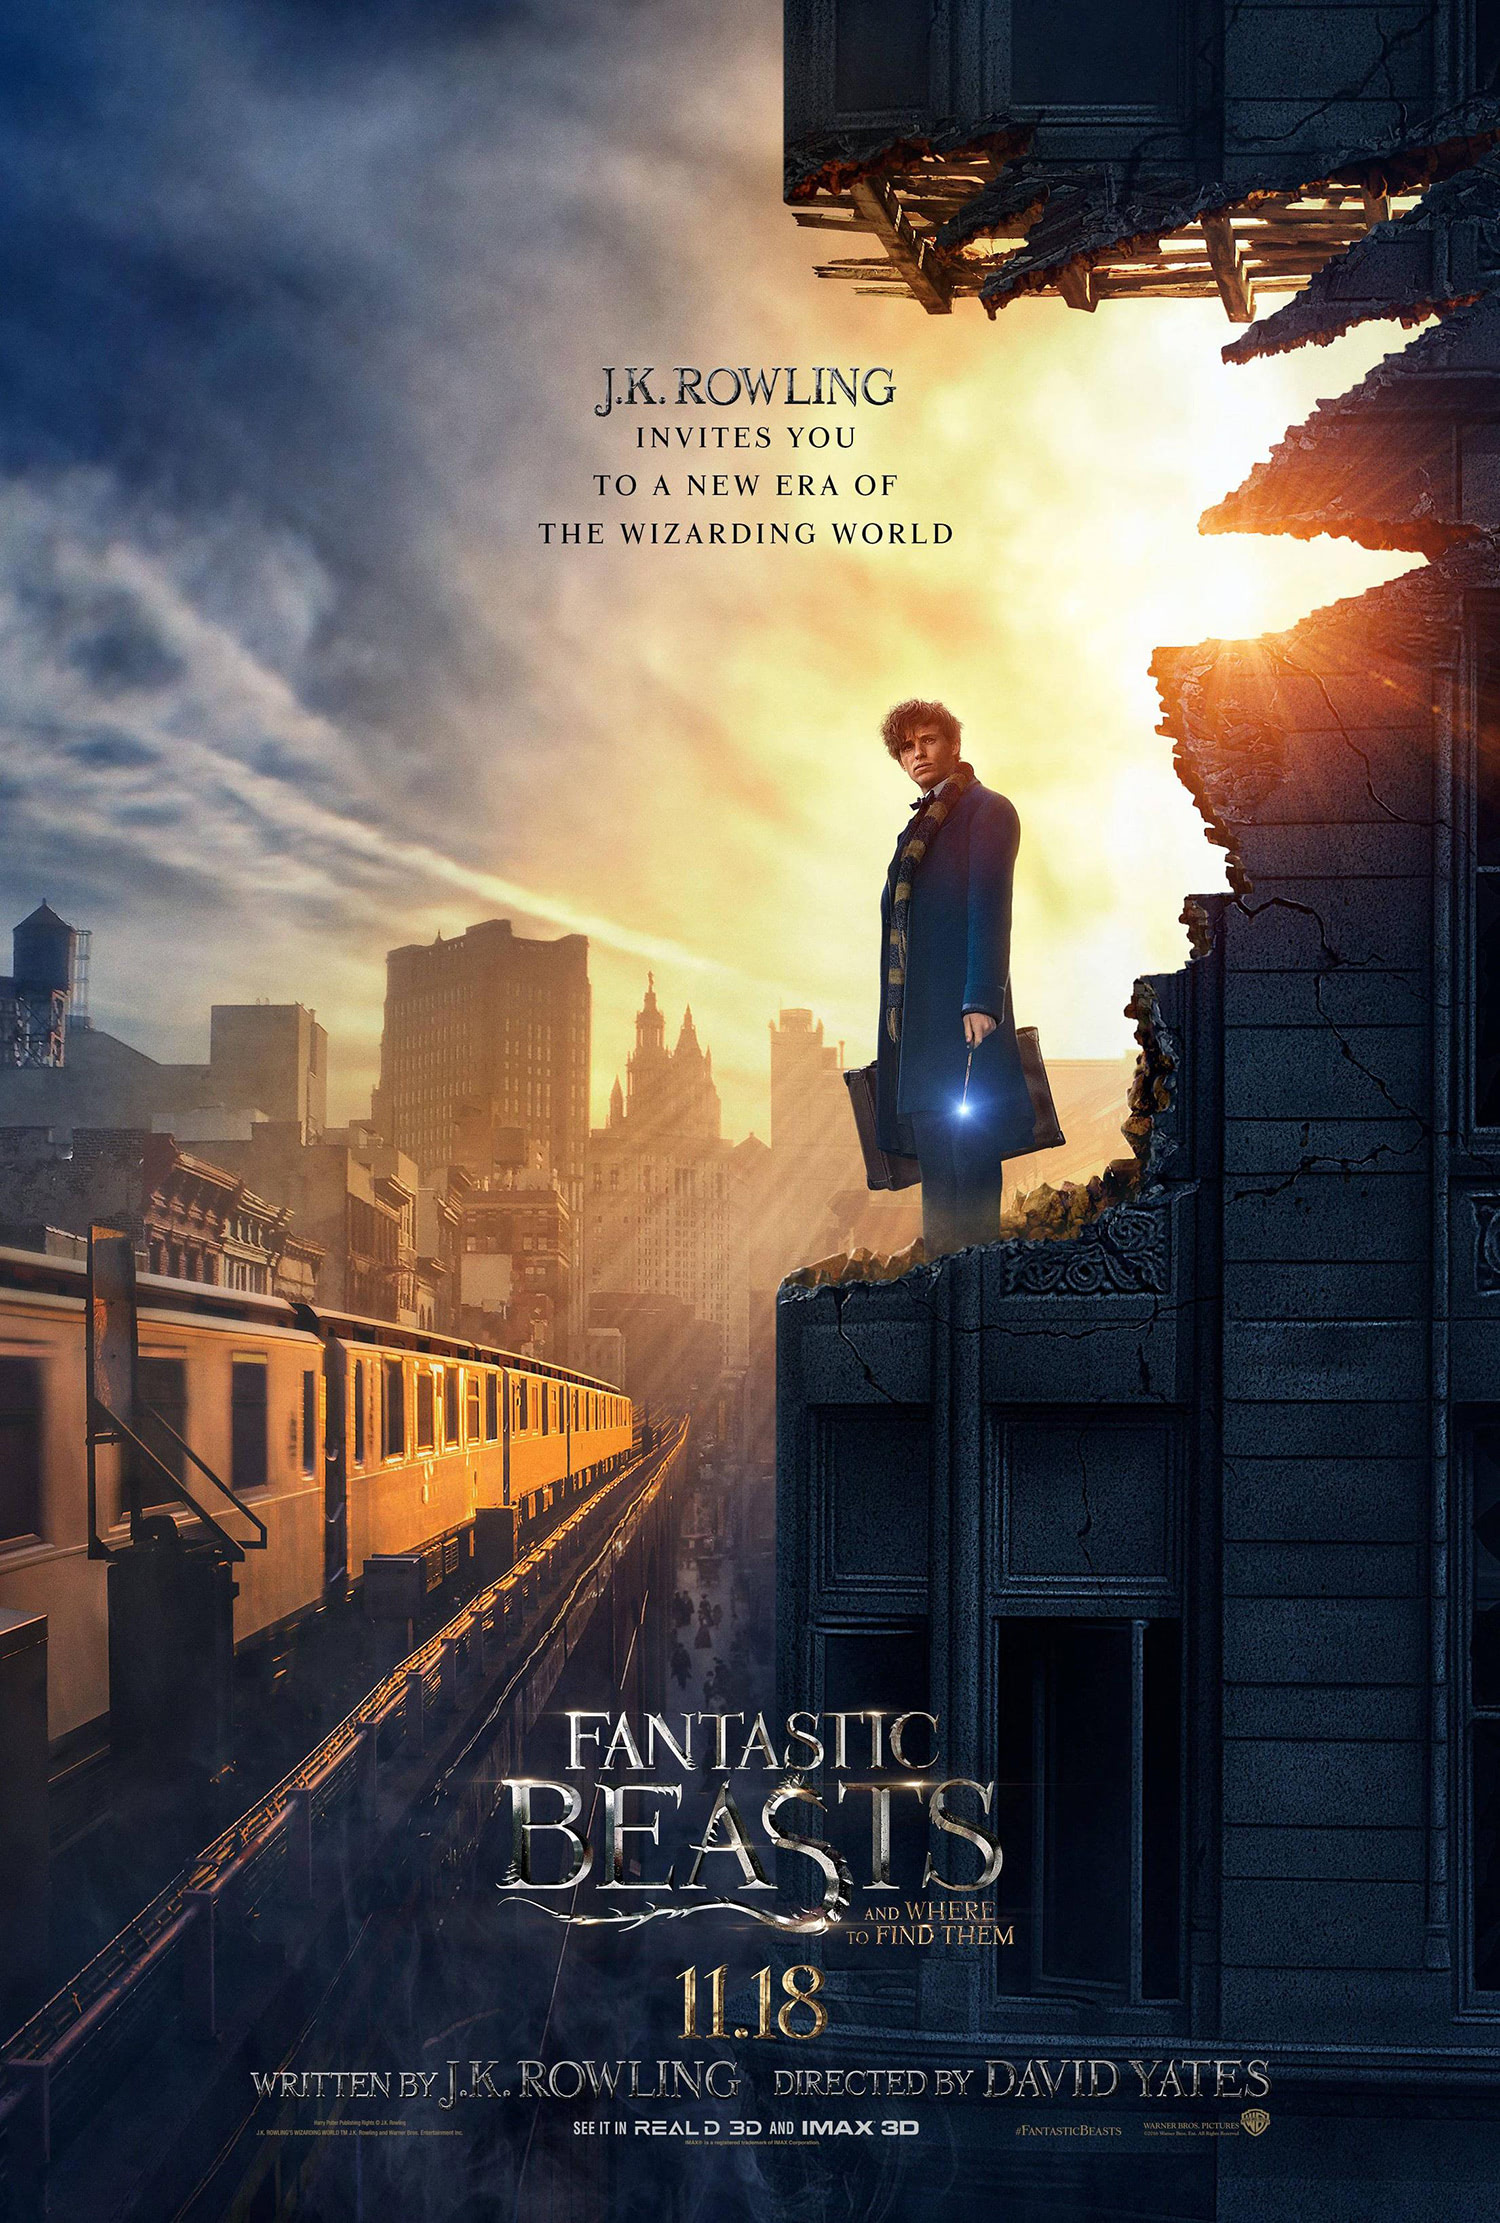 'Fantastic Beasts and Where to Find Them' poster #2